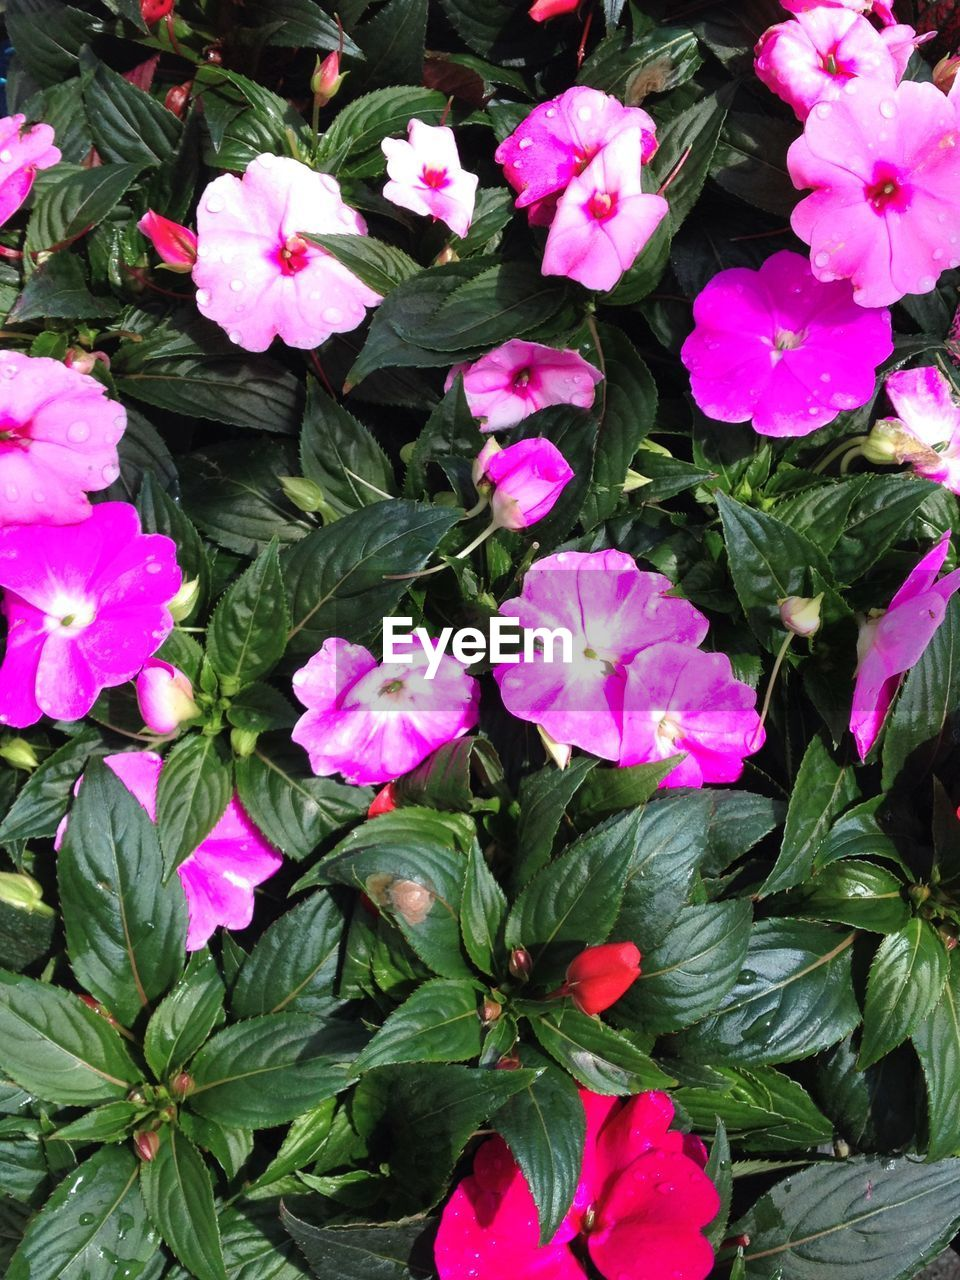 flower, growth, garden, plant, nature, spring, leaf, petal, blooming, no people, foliage, beauty in nature, outdoors, freshness, periwinkle, day